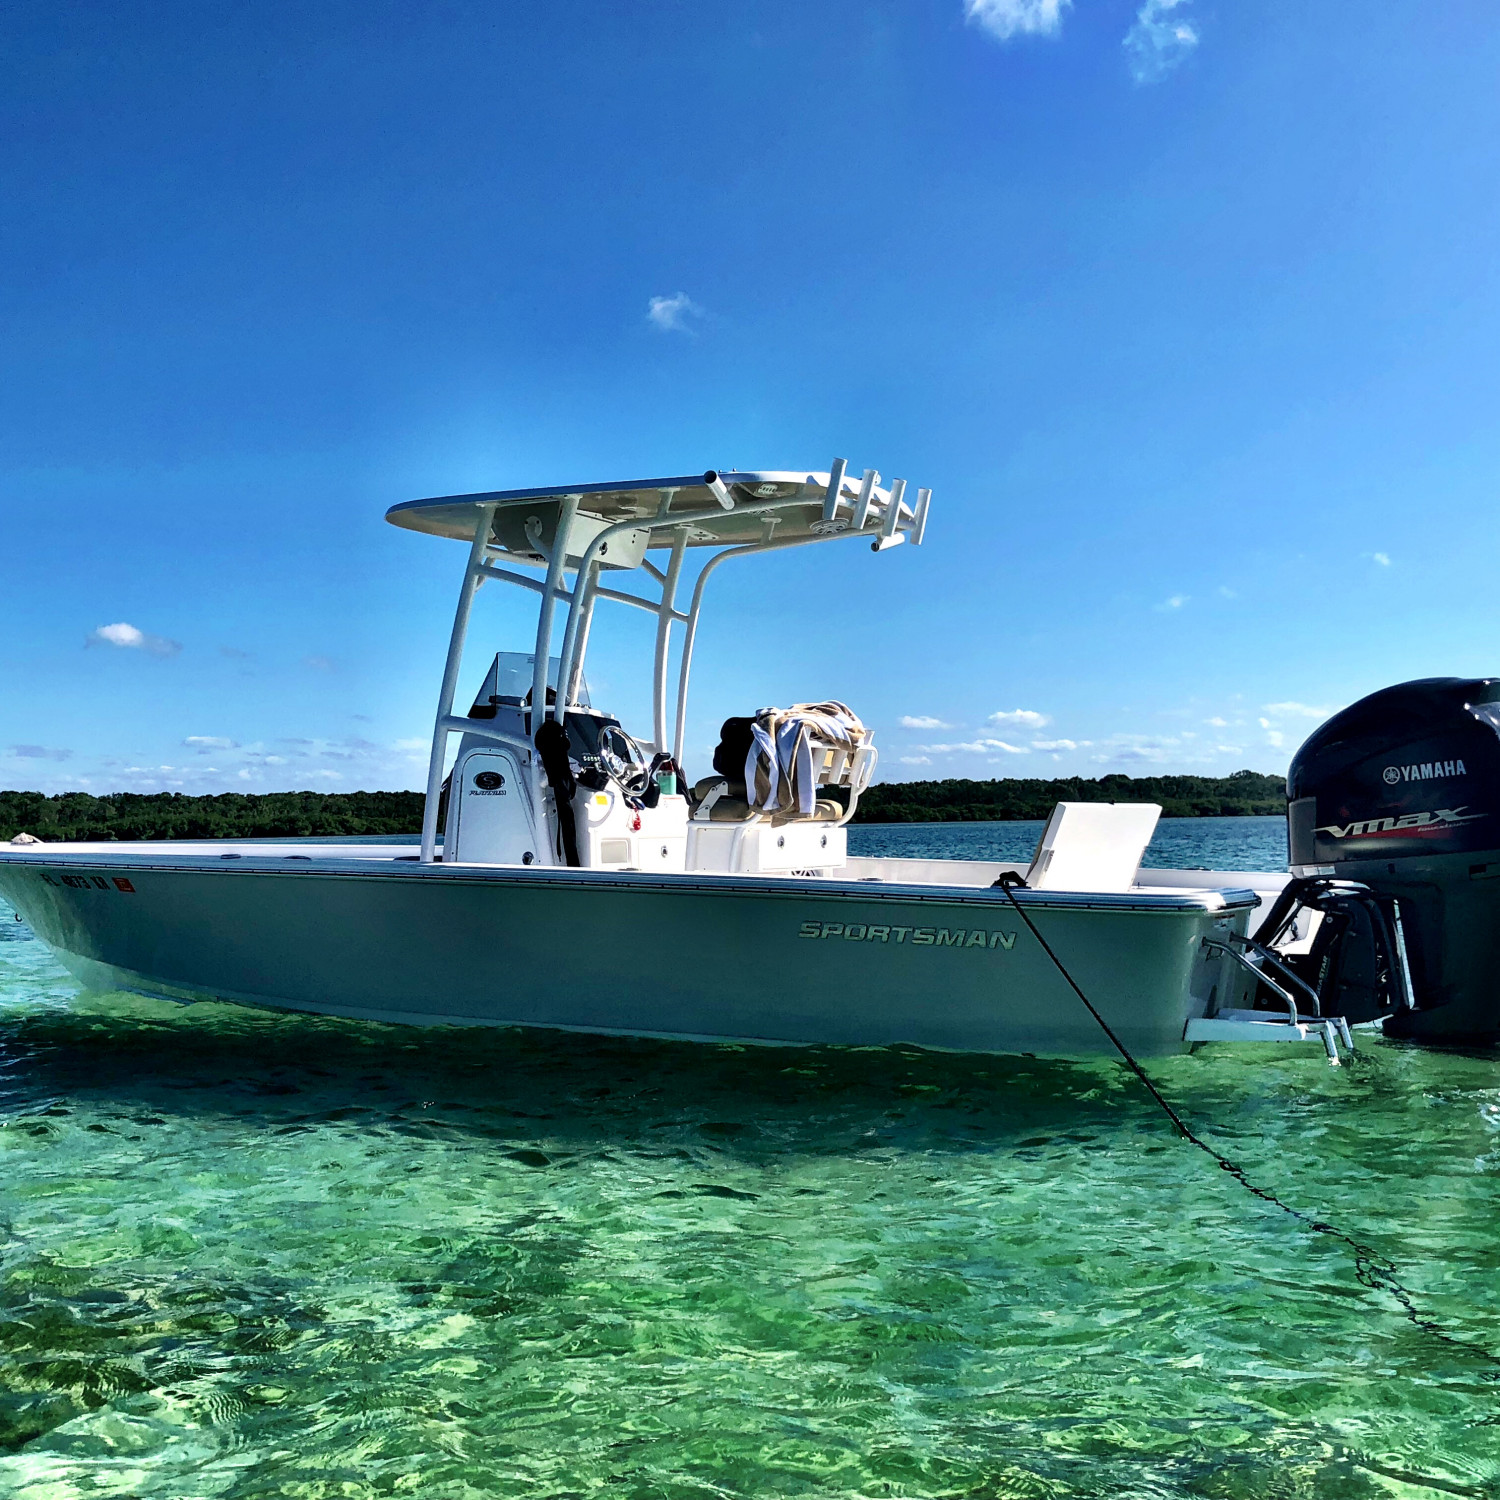 Title: Sandbar Bummin' - On board their Sportsman Masters 247 Bay Boat - Location: Miami, FL. Participating in the Photo Contest #SportsmanMarch2018